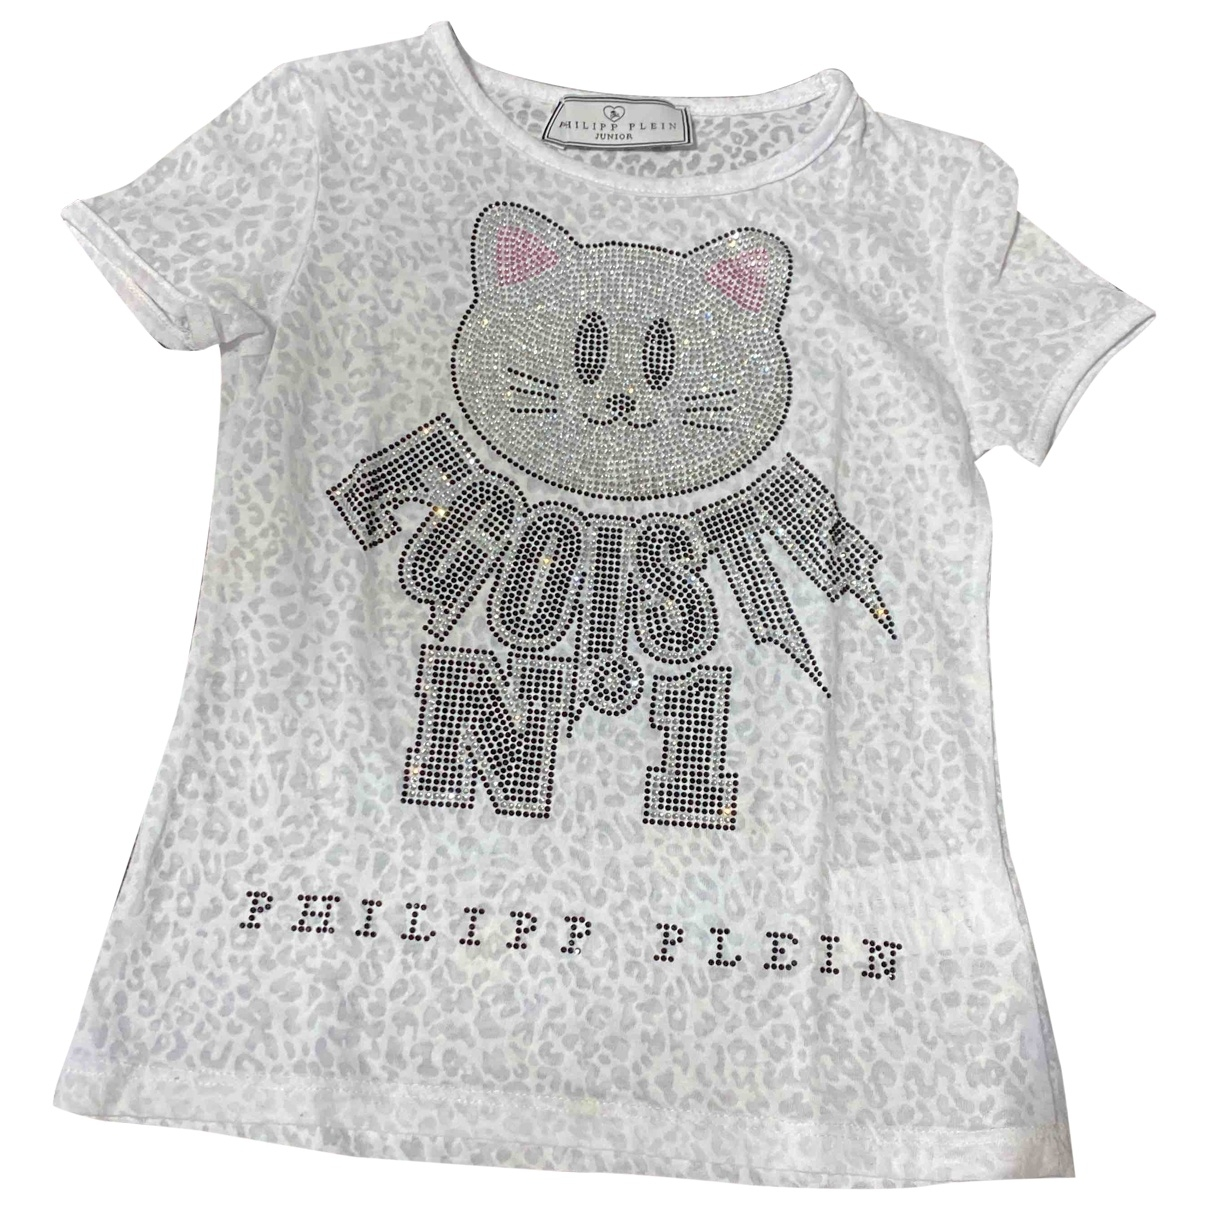 Philipp Plein \N White Cotton dress for Kids 5 years - up to 108cm FR